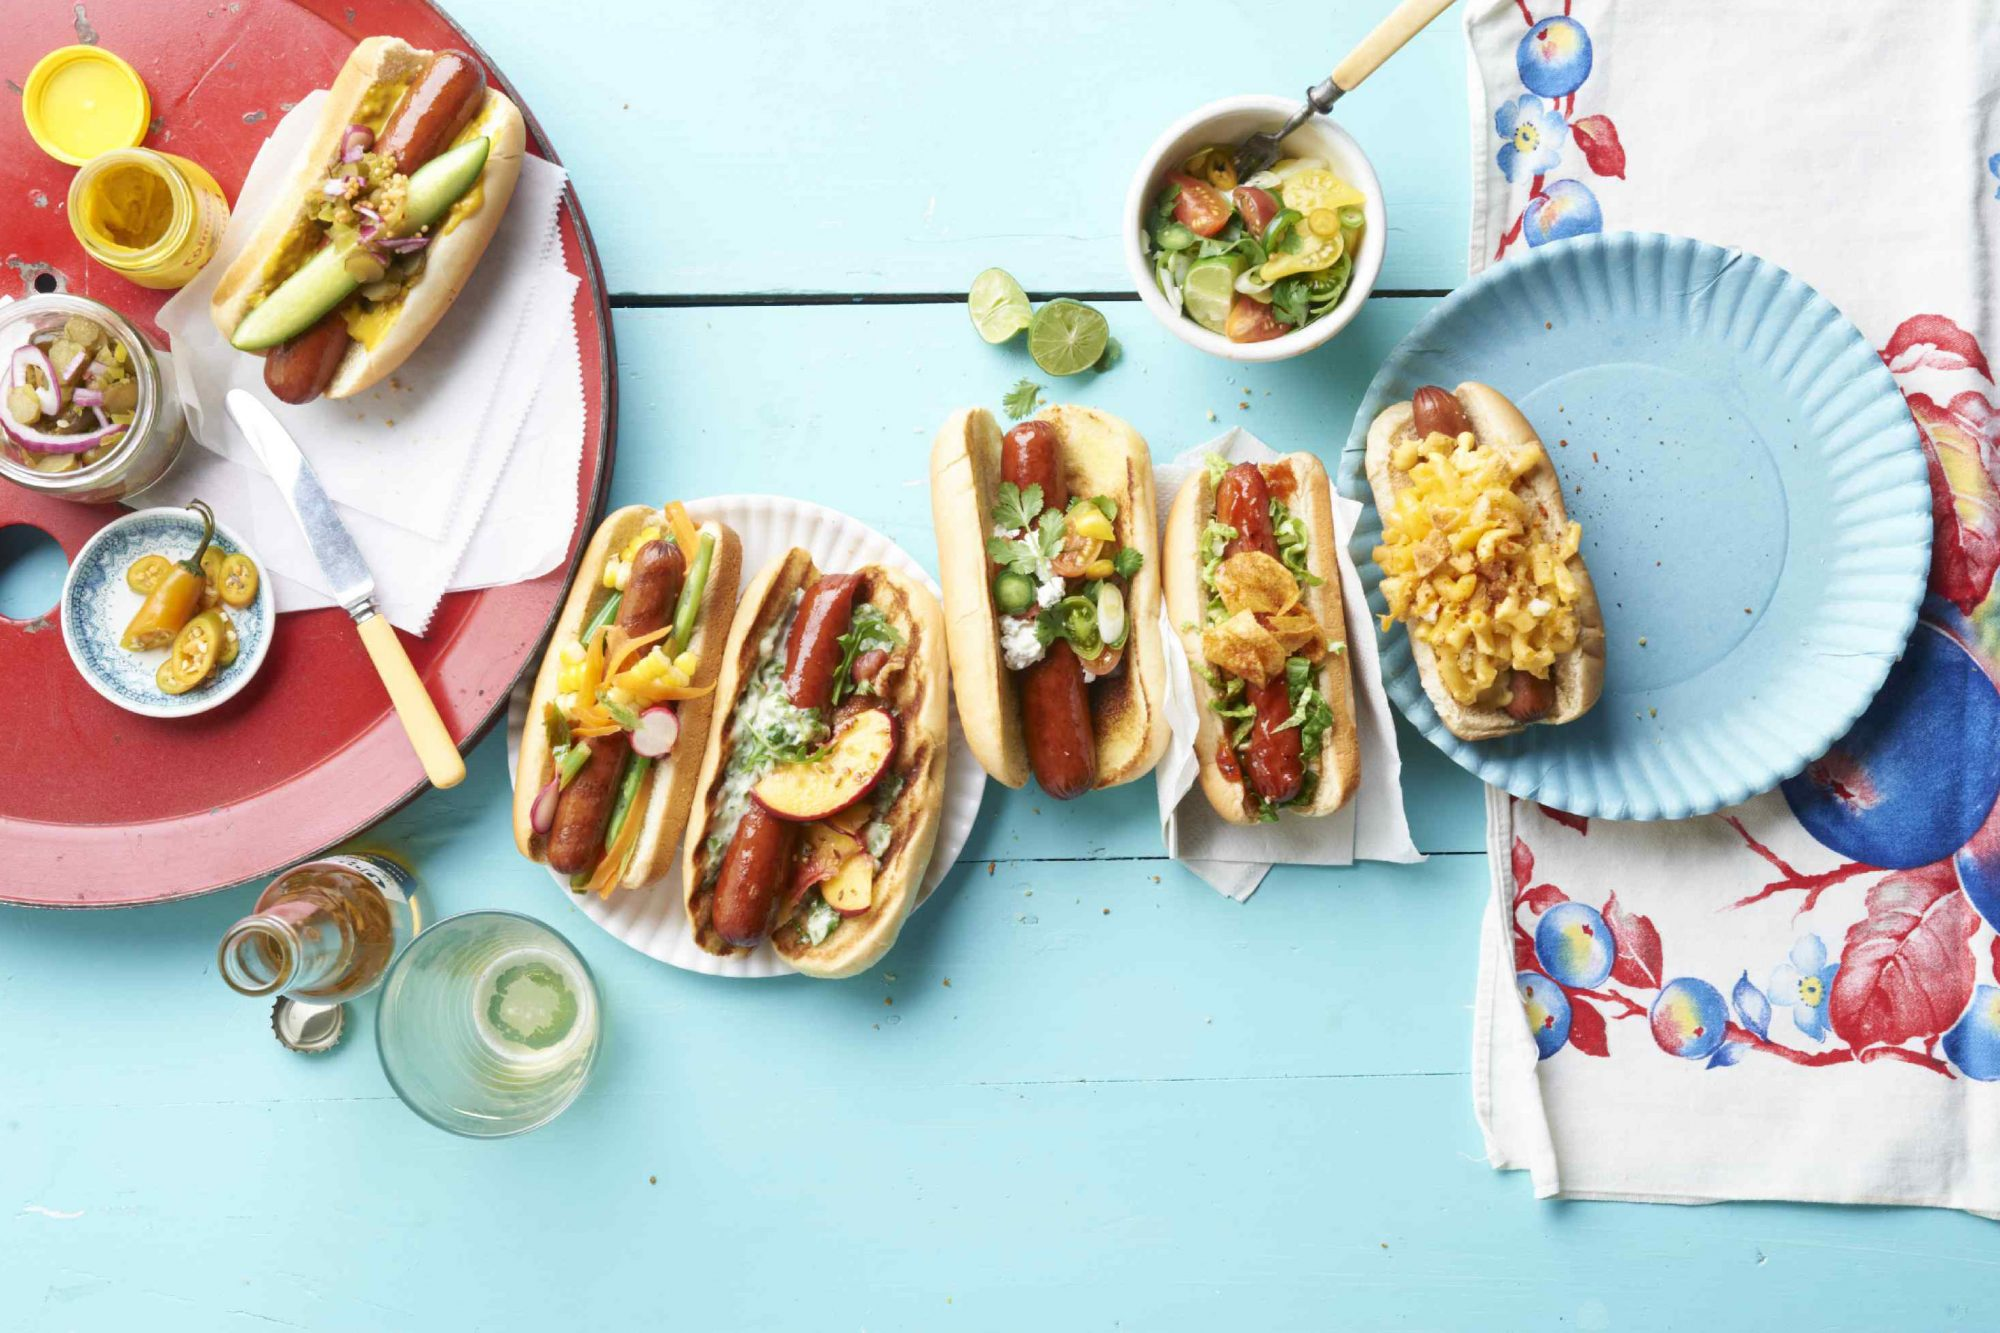 Hot dogs on light blue table